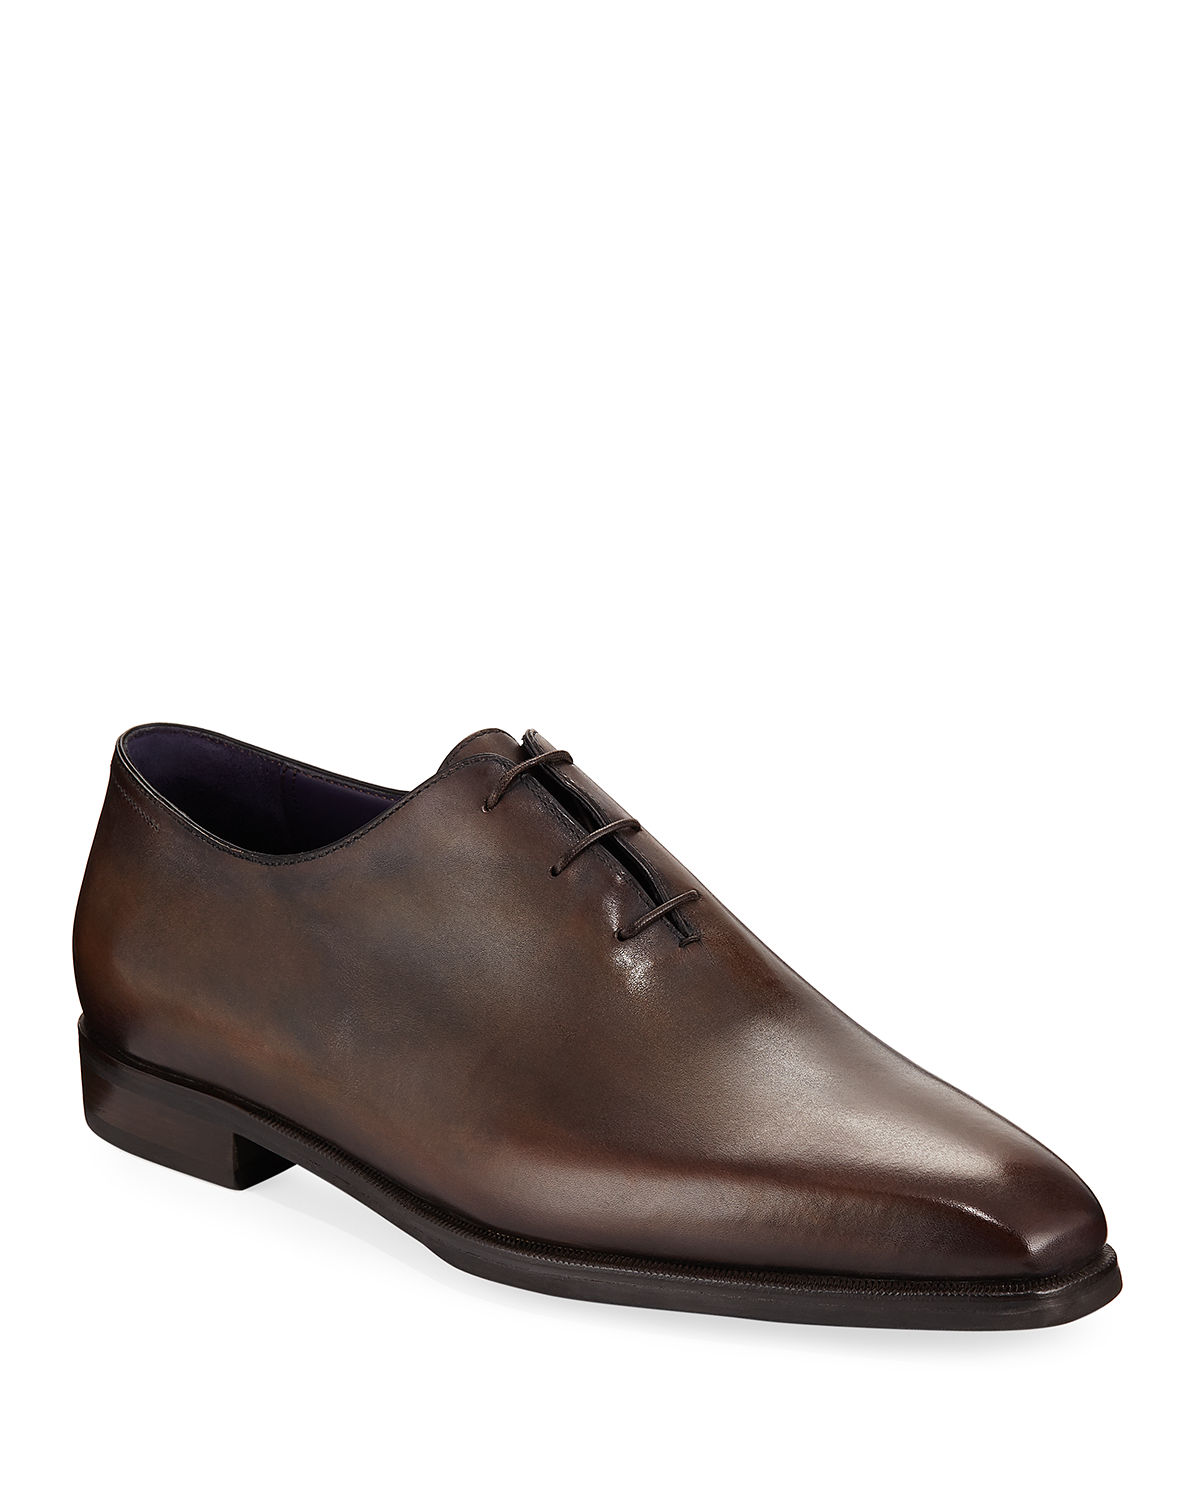 Berluti Oxfords ALESSANDRO DEMESURE LEATHER OXFORDS WITH LEATHER SOLE